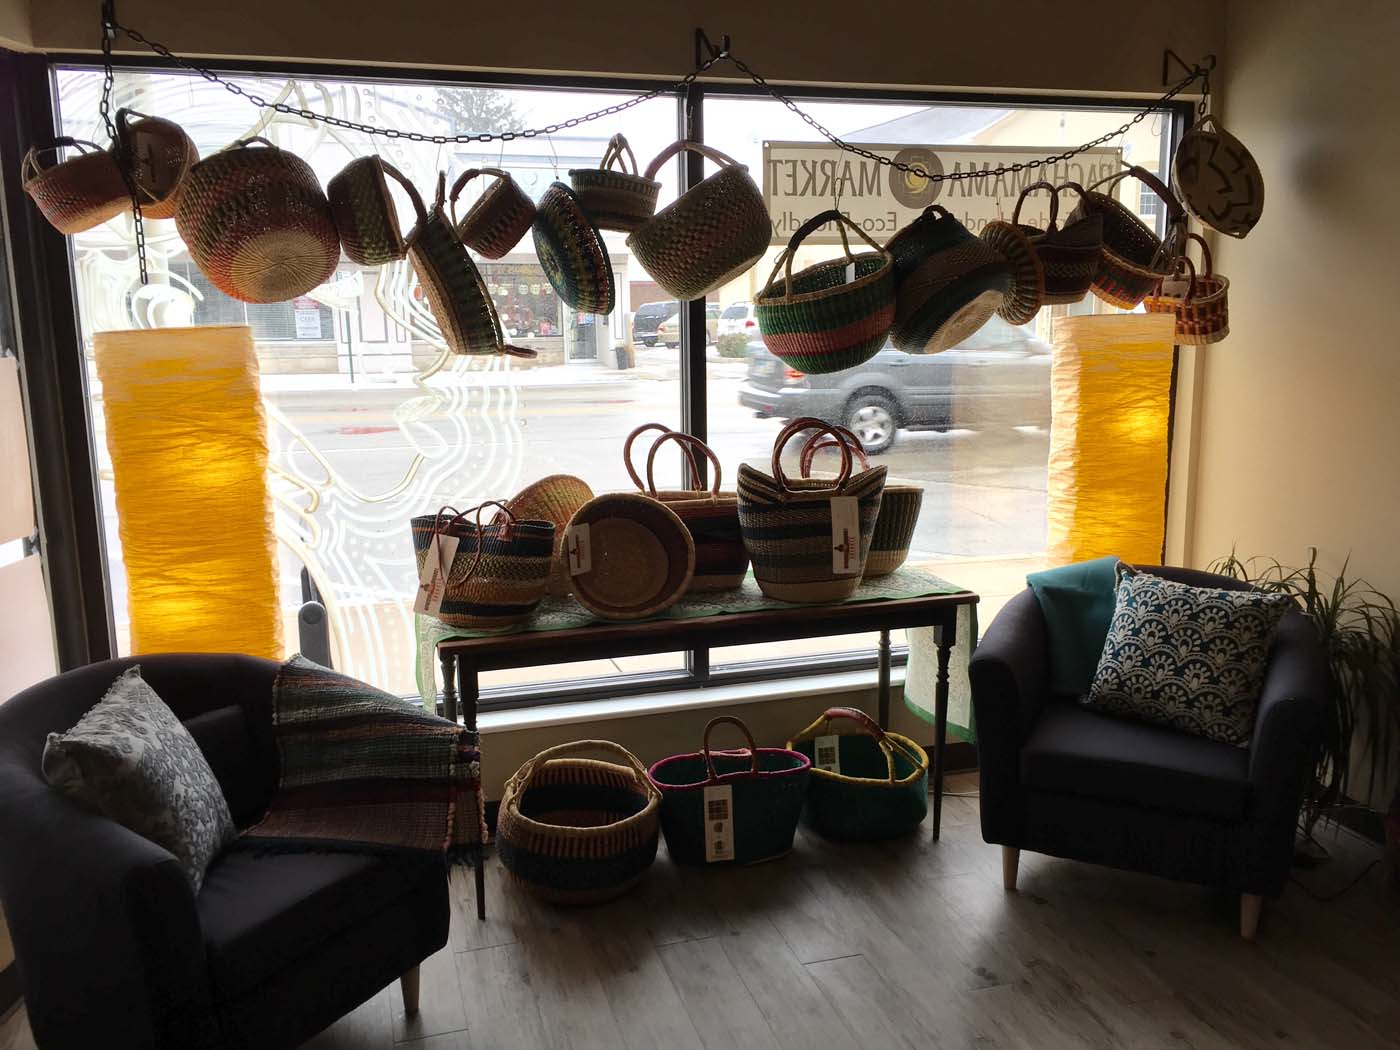 A horizontal window display that showcases the baskets